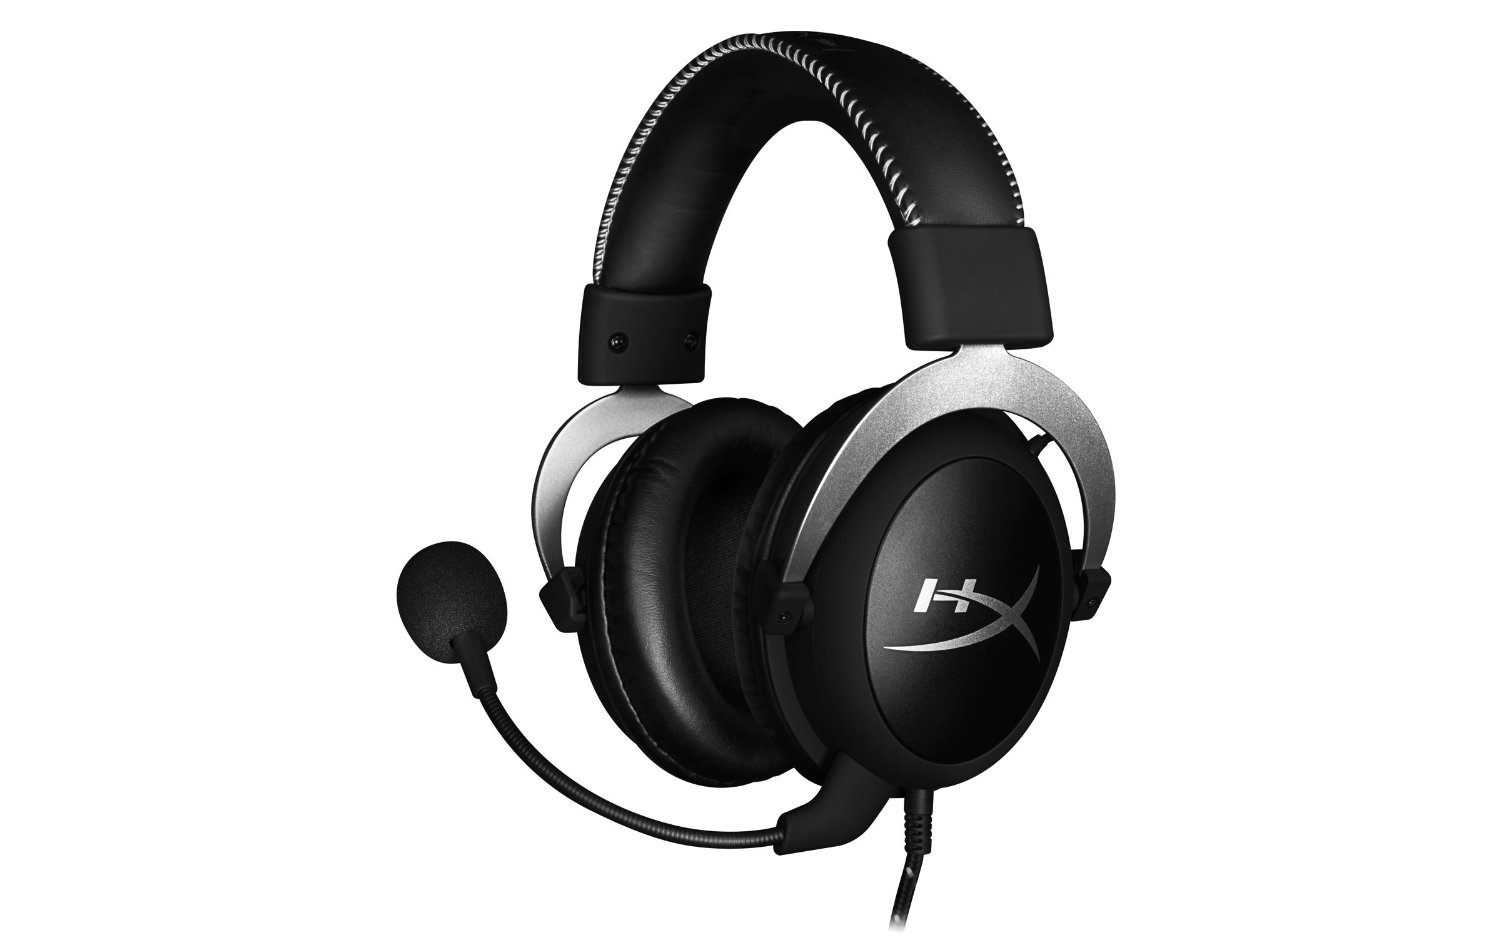 casque kingston hyperx cloudx pro gaming xbox one pc mobiles page 1 gamalive. Black Bedroom Furniture Sets. Home Design Ideas